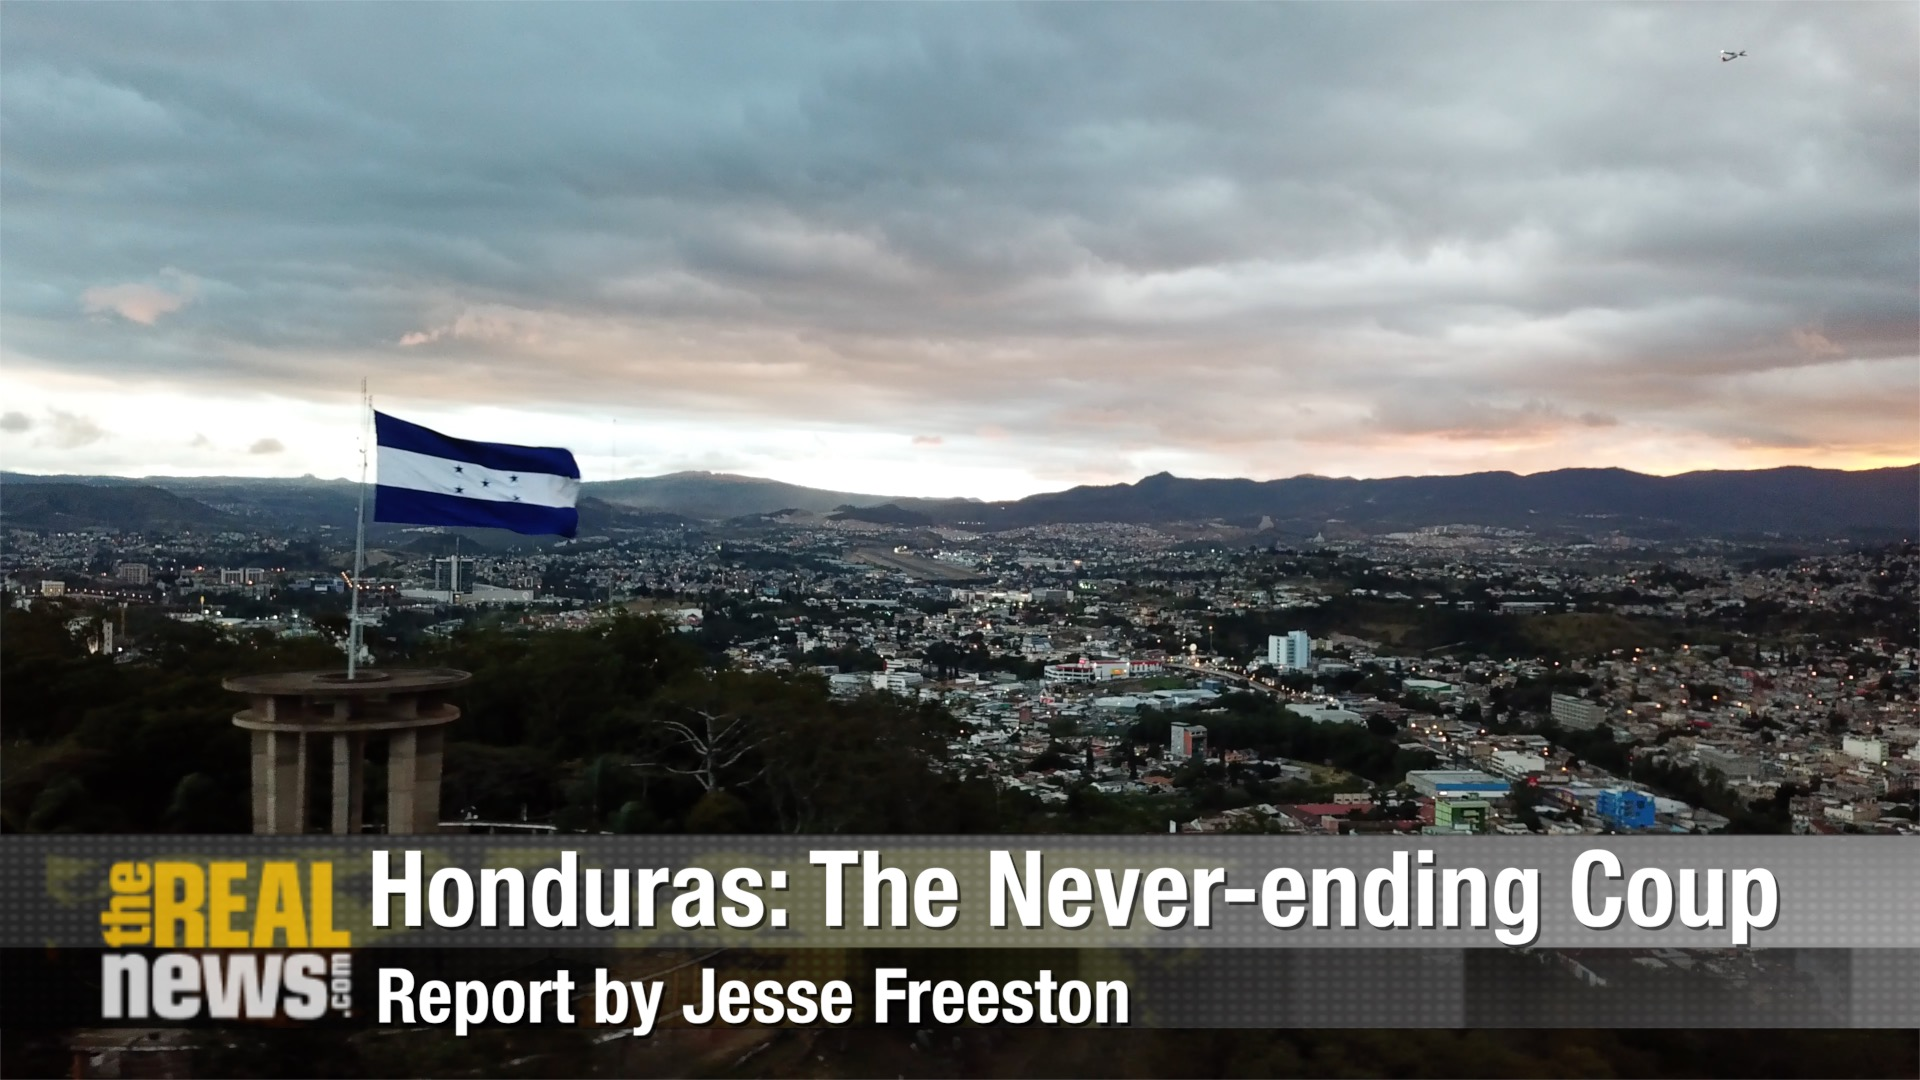 Honduras: The Never-ending Coup